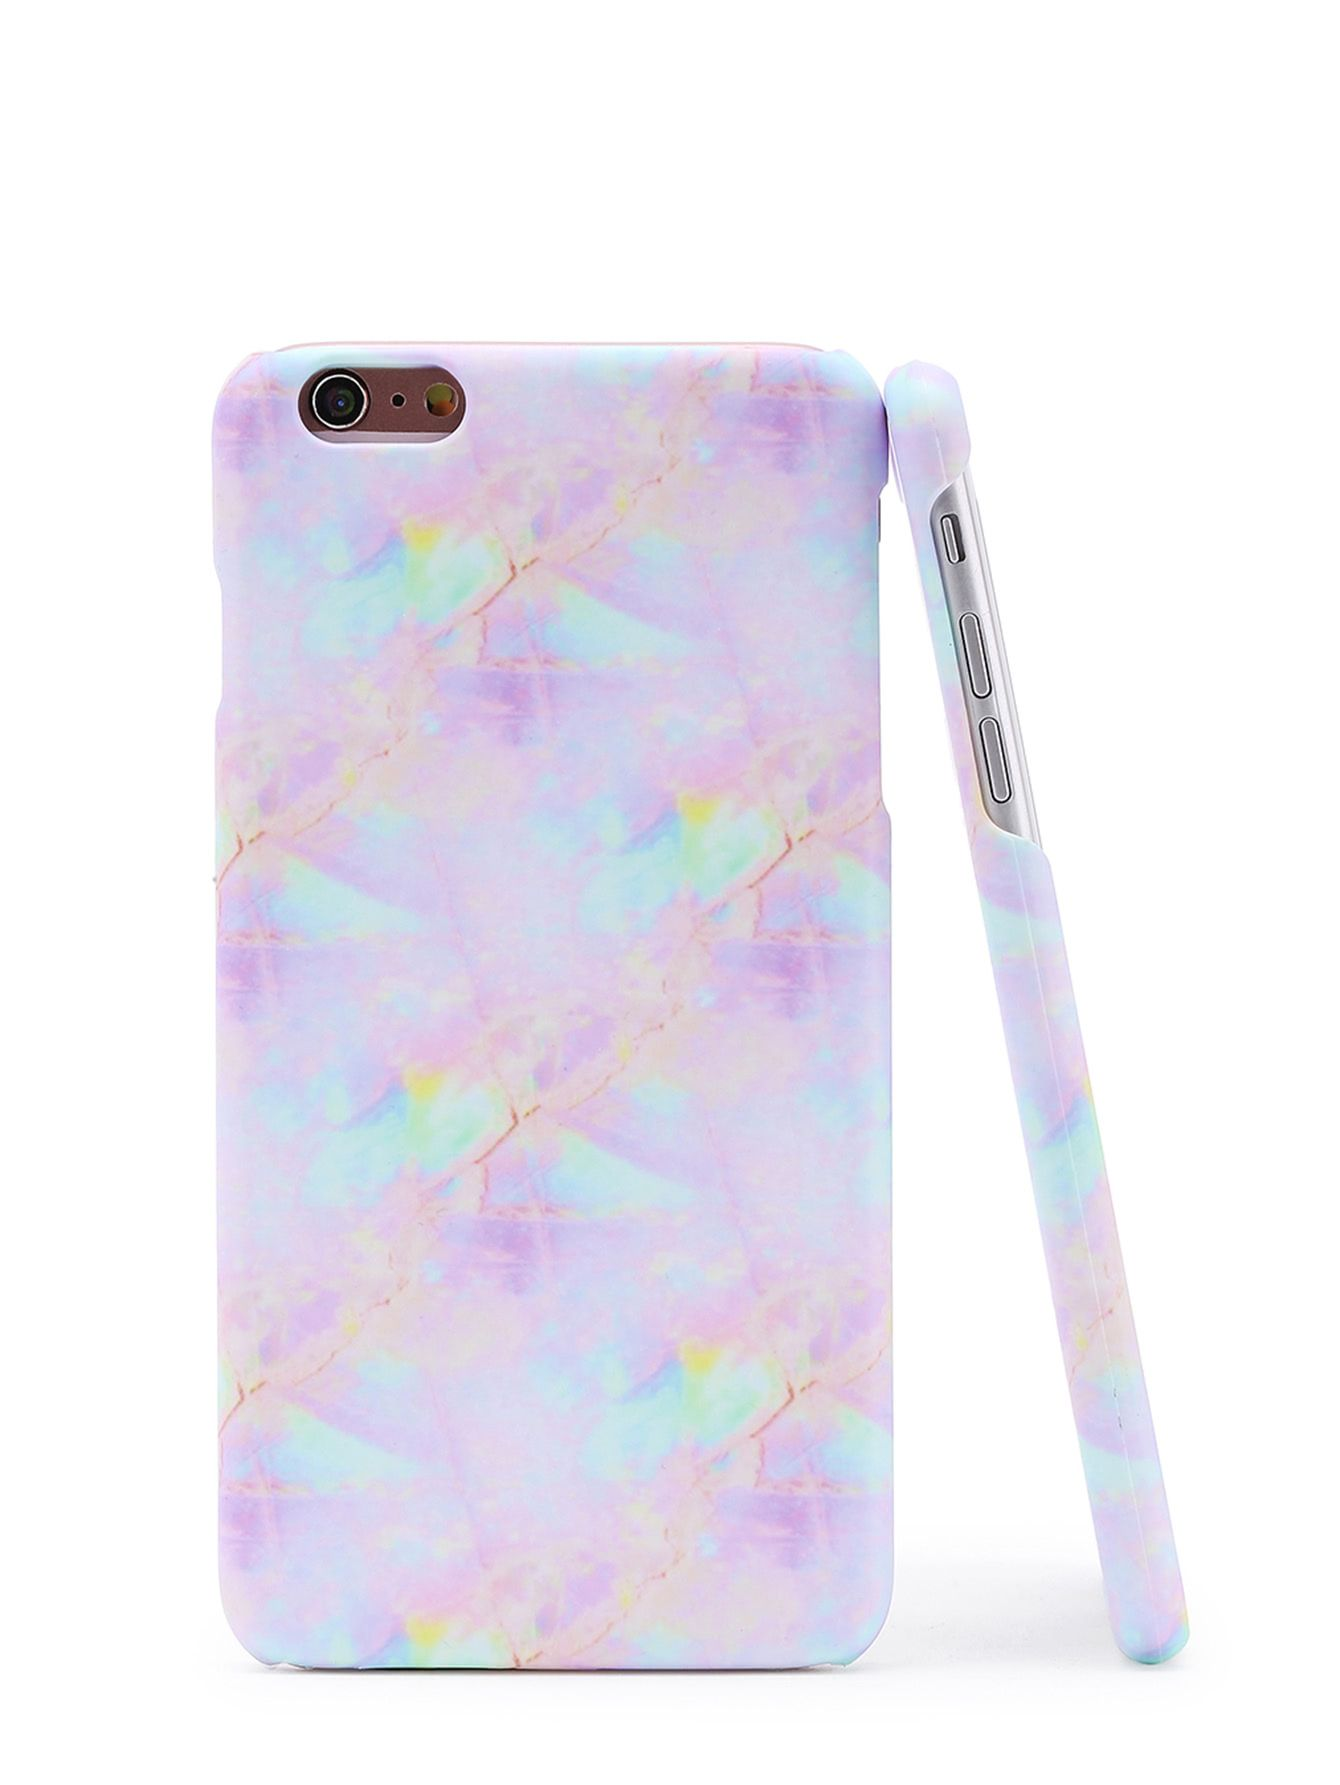 100f5228a6 Shop Iridescent Marble Print iPhone Case online. SheIn offers Iridescent  Marble Print iPhone Case & more to fit your fashionable needs.